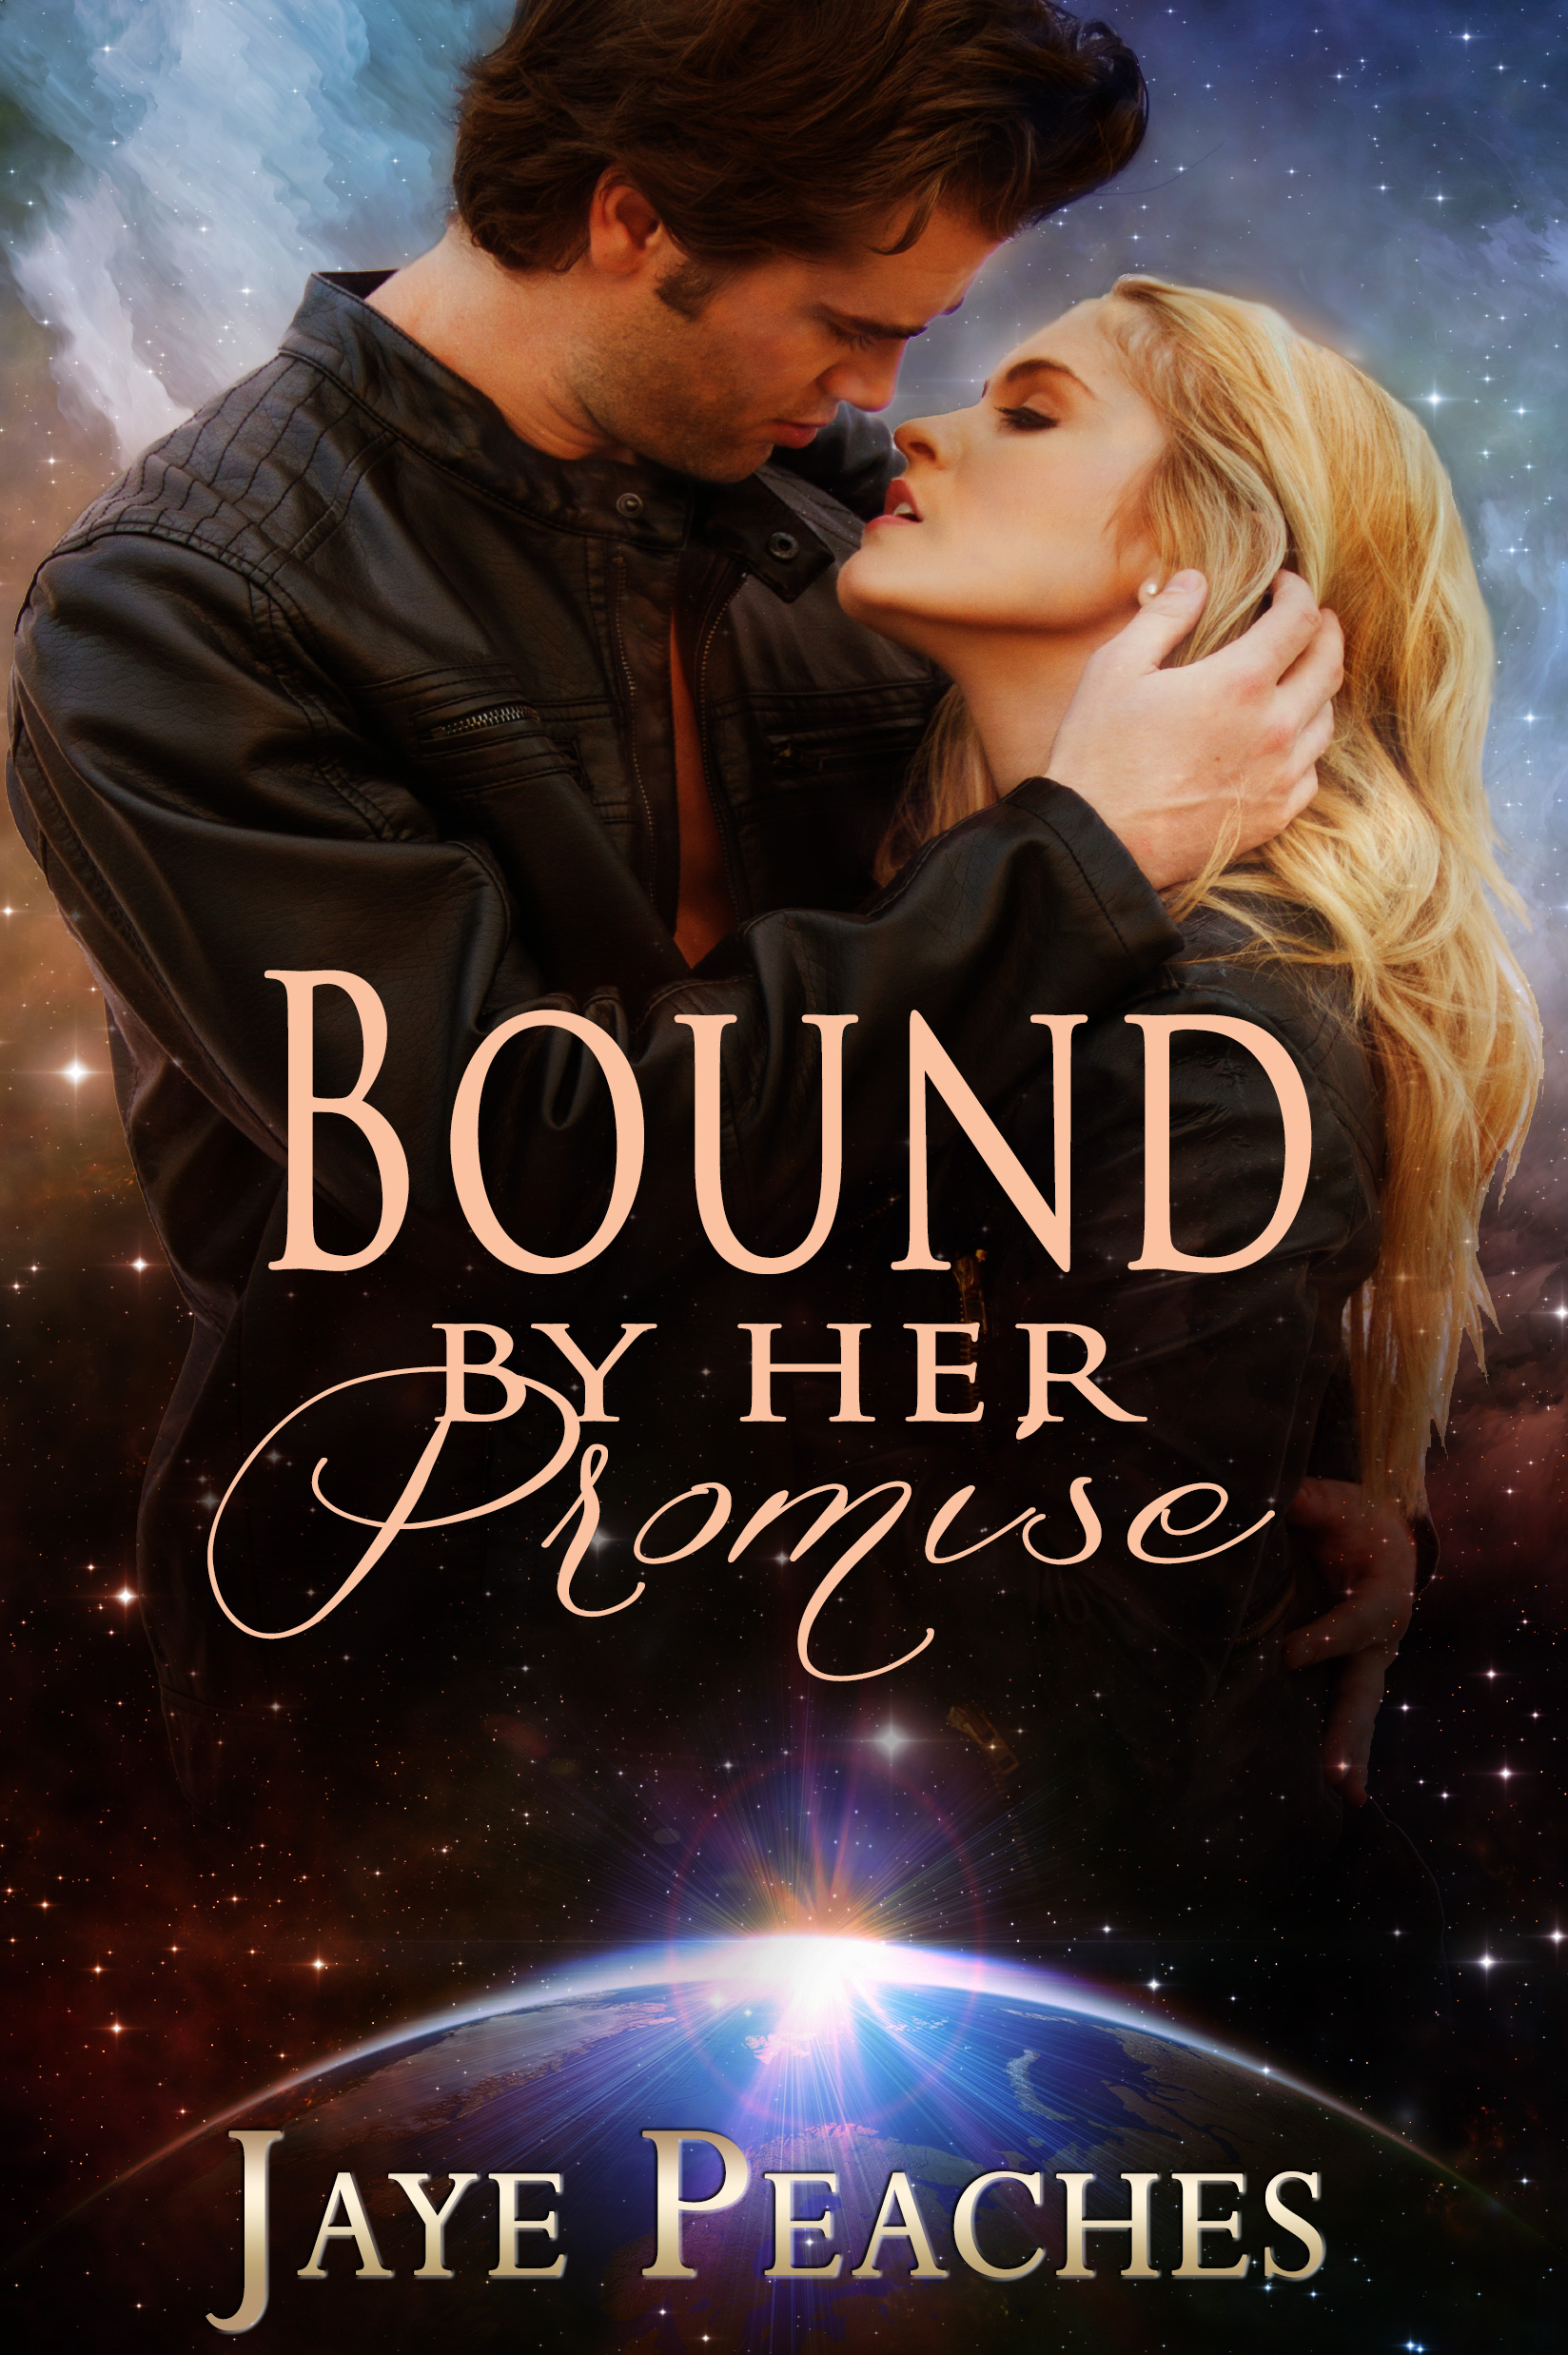 Book Cover: Bound by her Promise